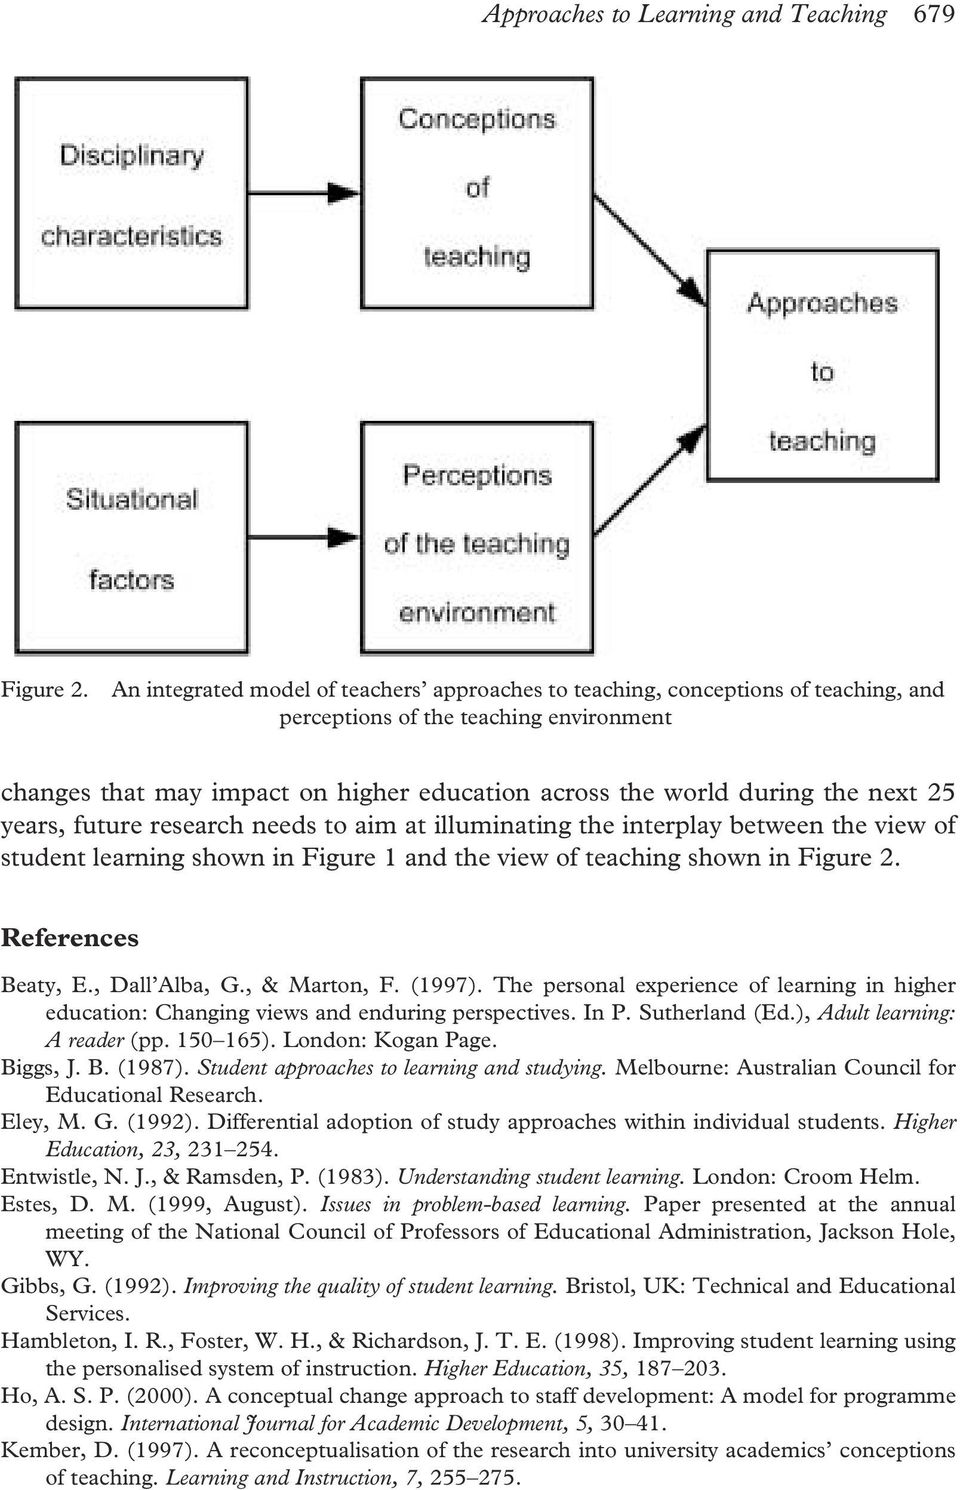 next 25 years, future research needs to aim at illuminating the interplay between the view of student learning shown in Figure 1 and the view of teaching shown in Figure 2. References Beaty, E.